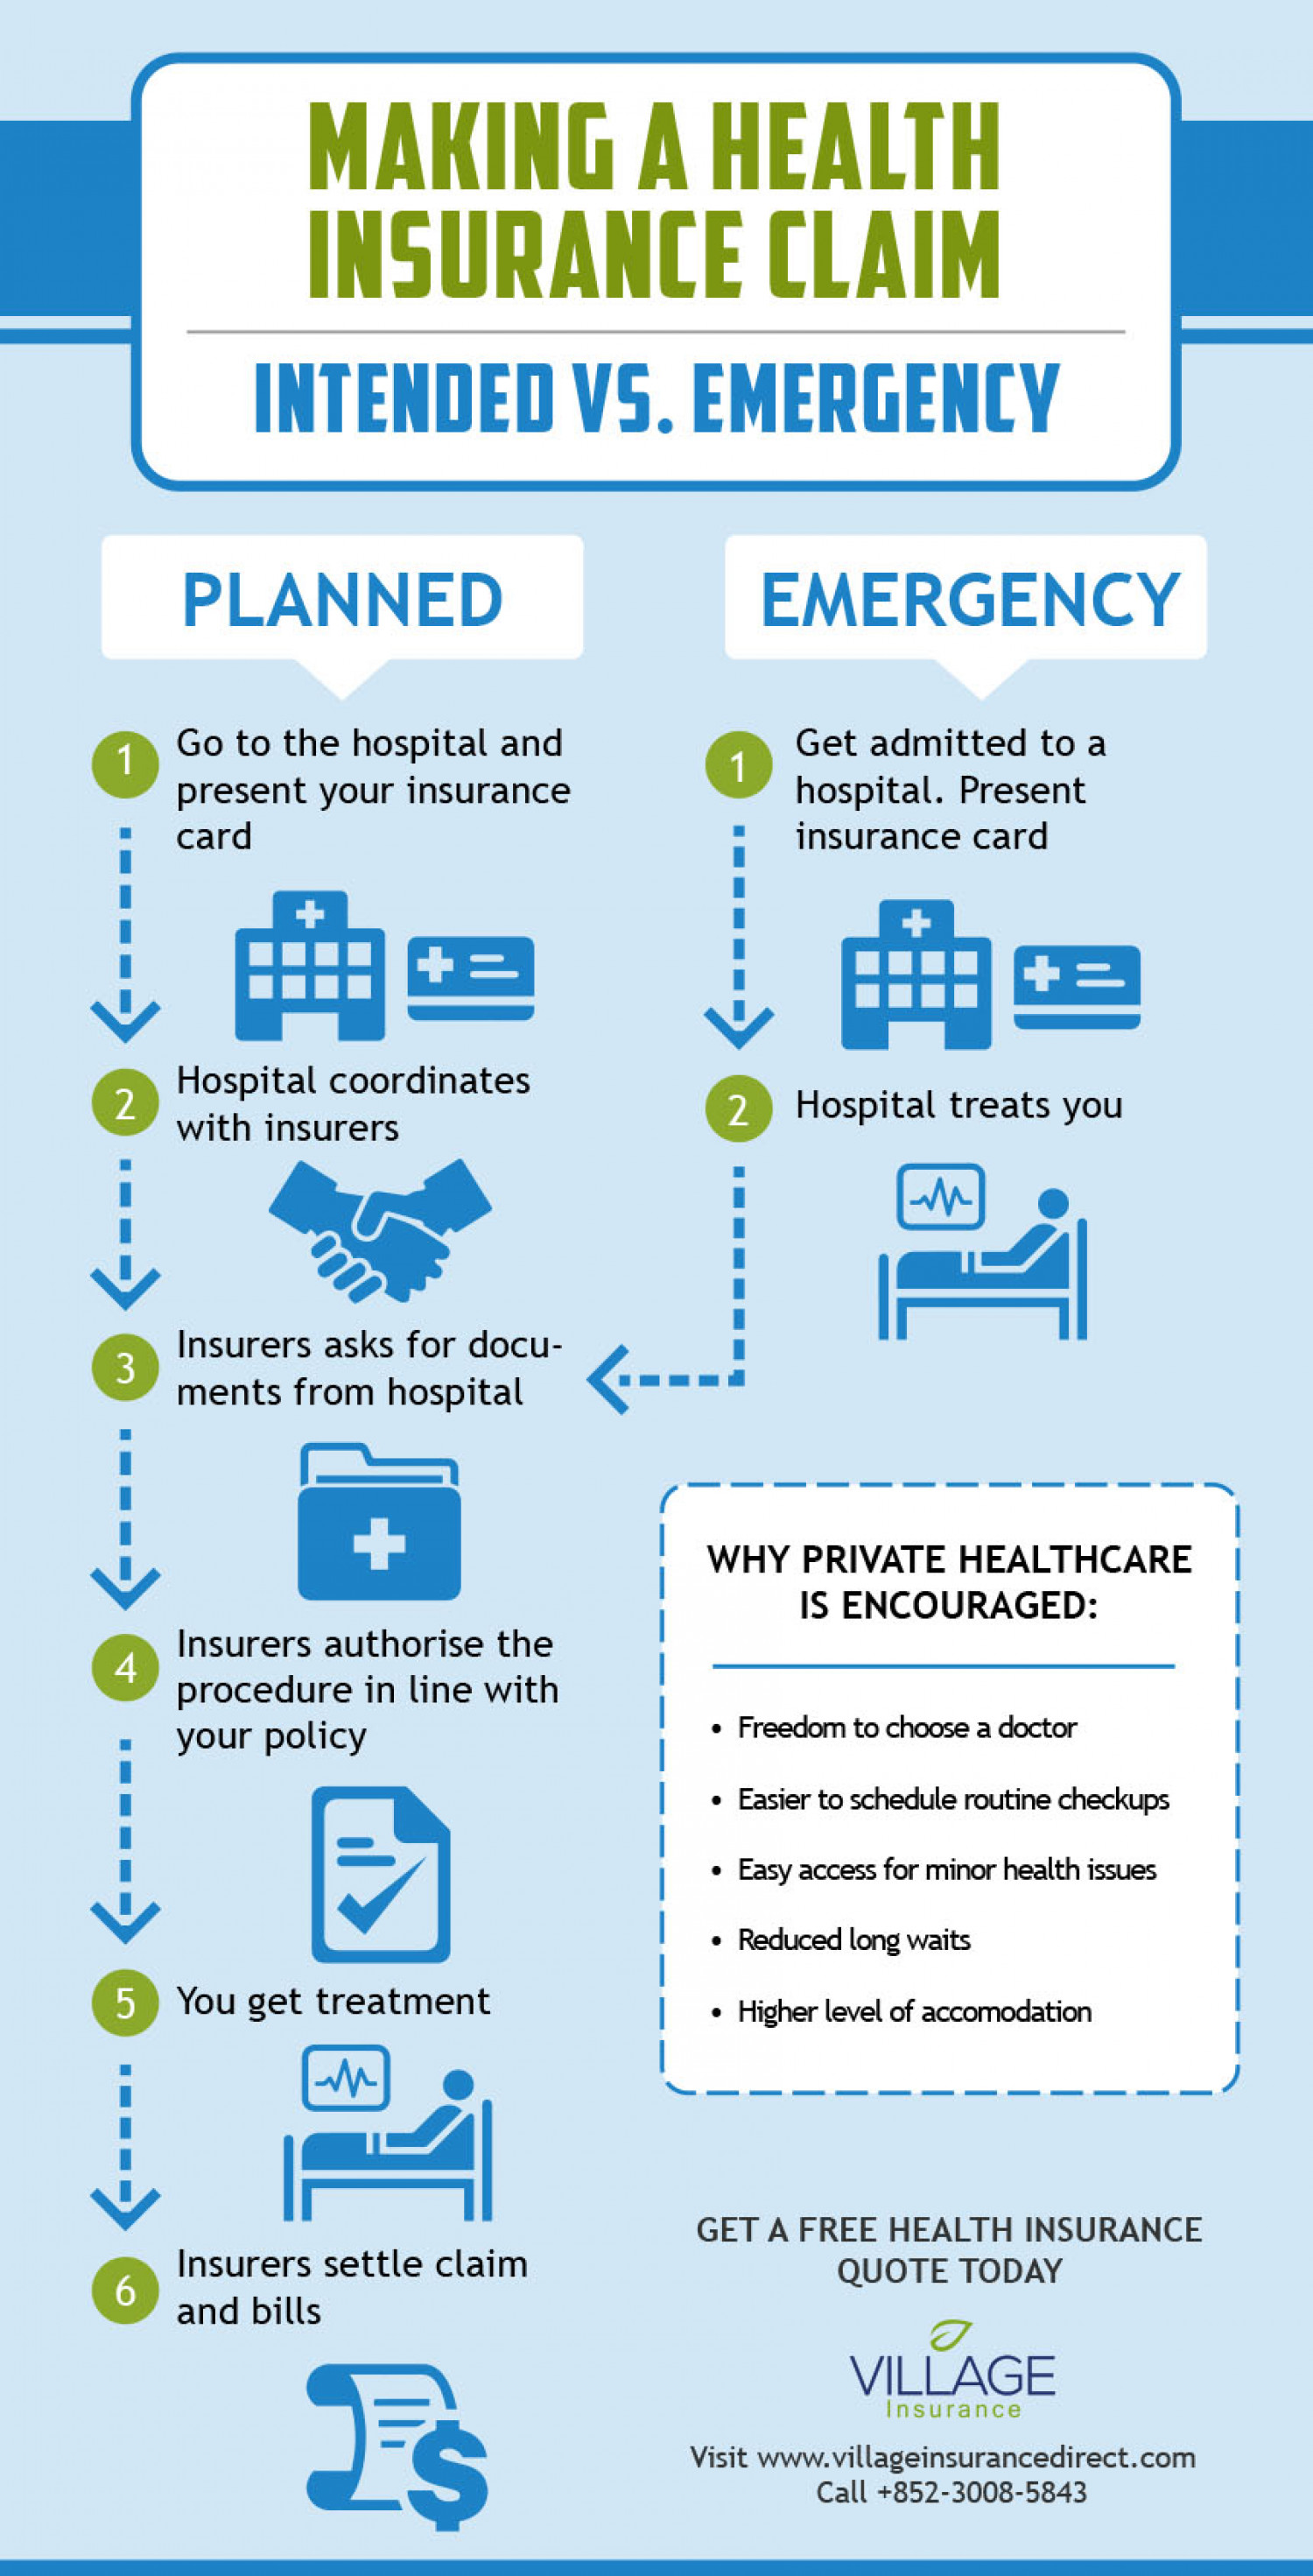 How to Make a Health Insurance Claim Infographic